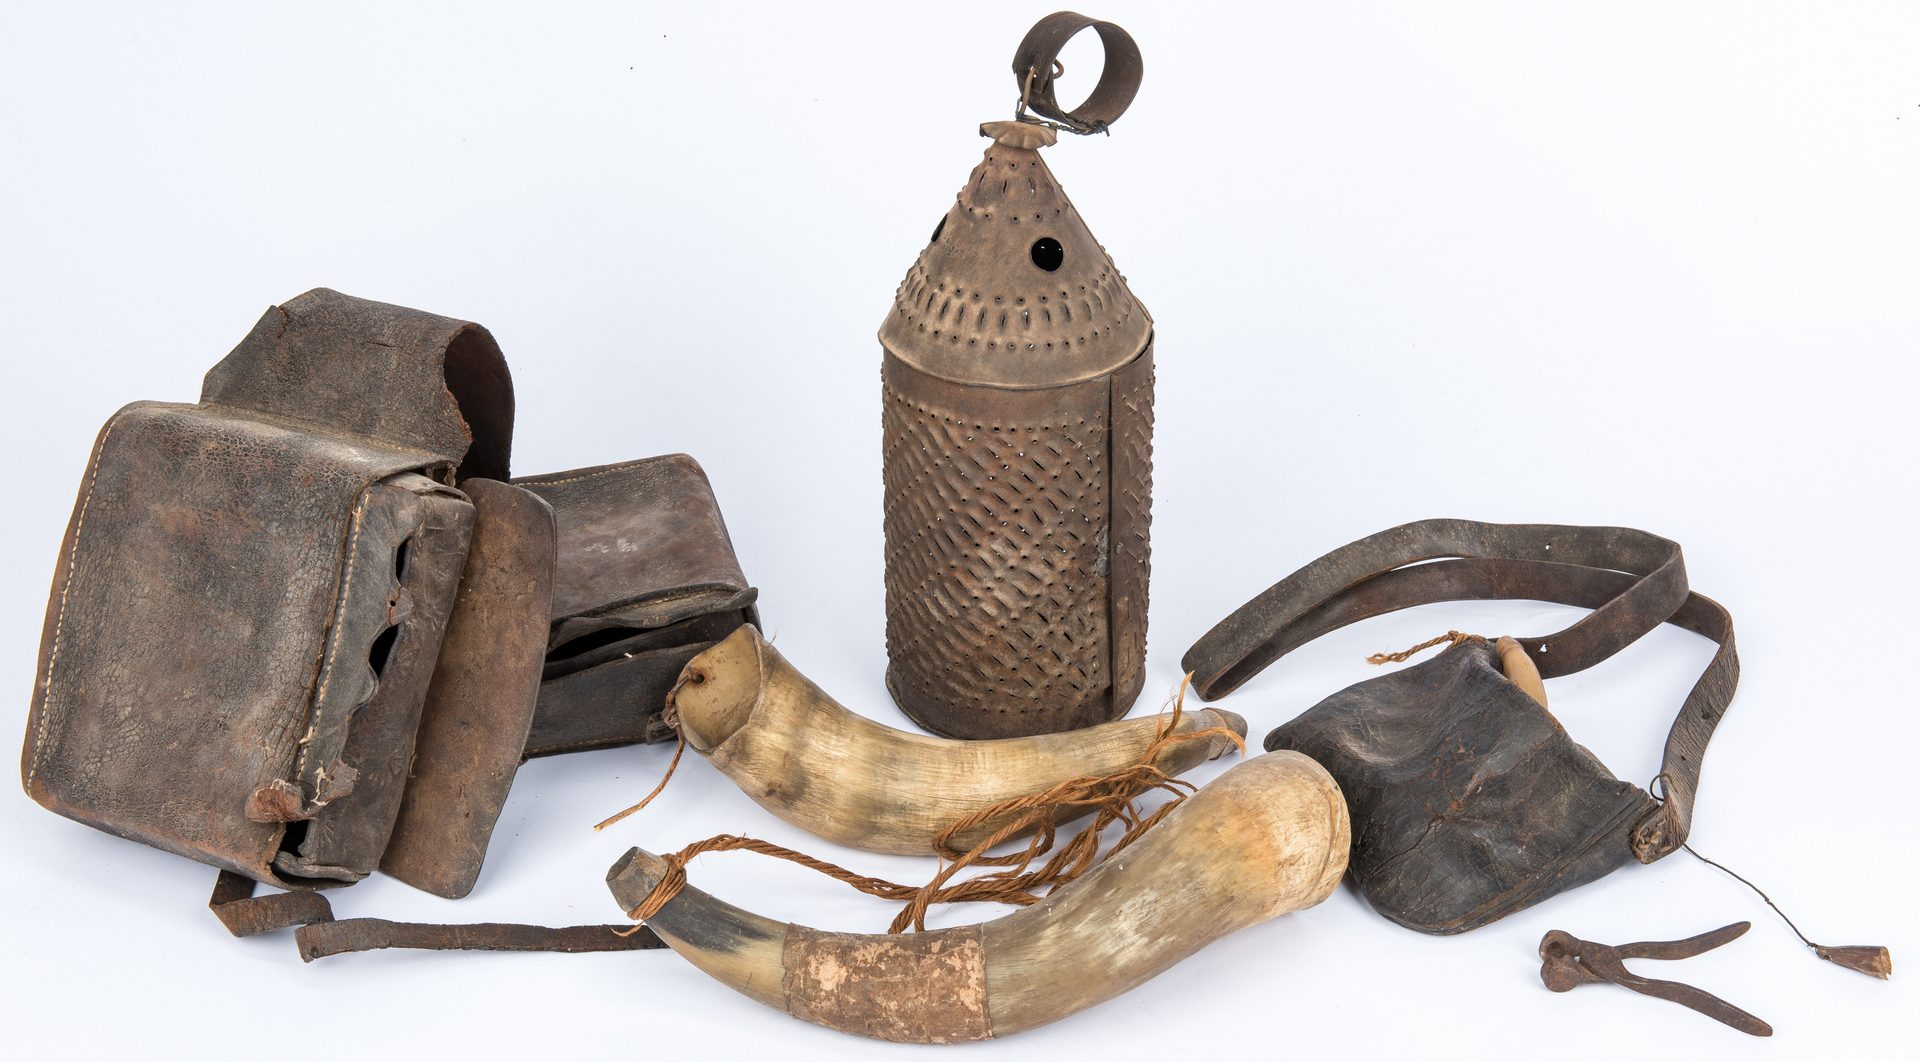 Lot 400: Grouping of Early Frontier Accessories, incl. Punched Lantern, Saddlebags